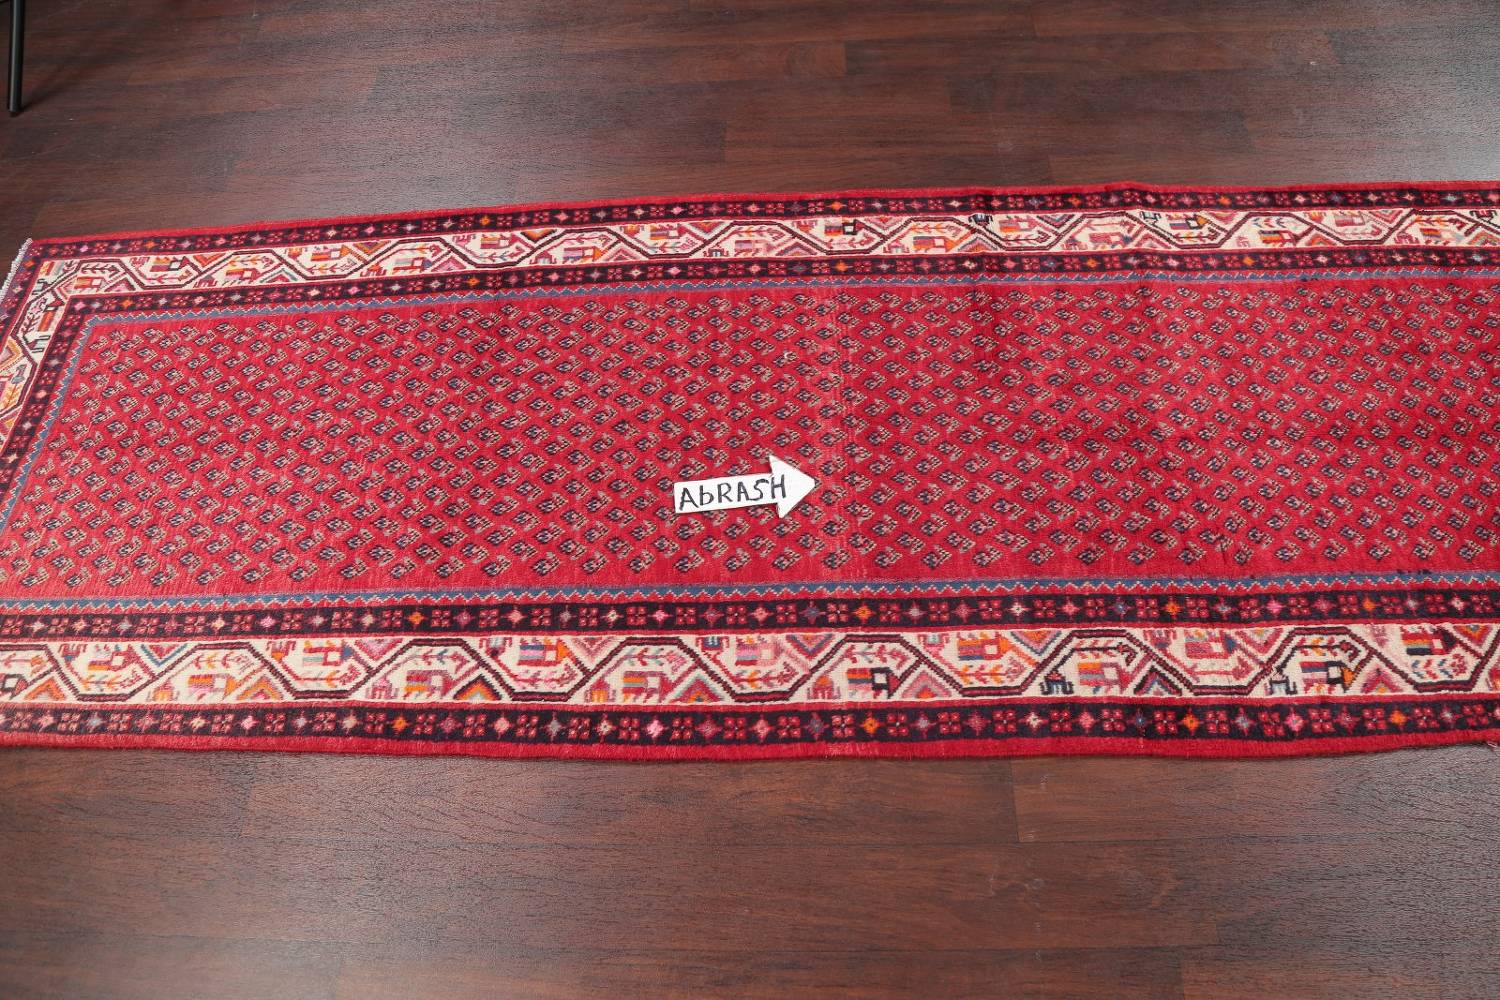 One-of-a-Kind Boteh Botemir Persian Runner Rug 3x13 image 10